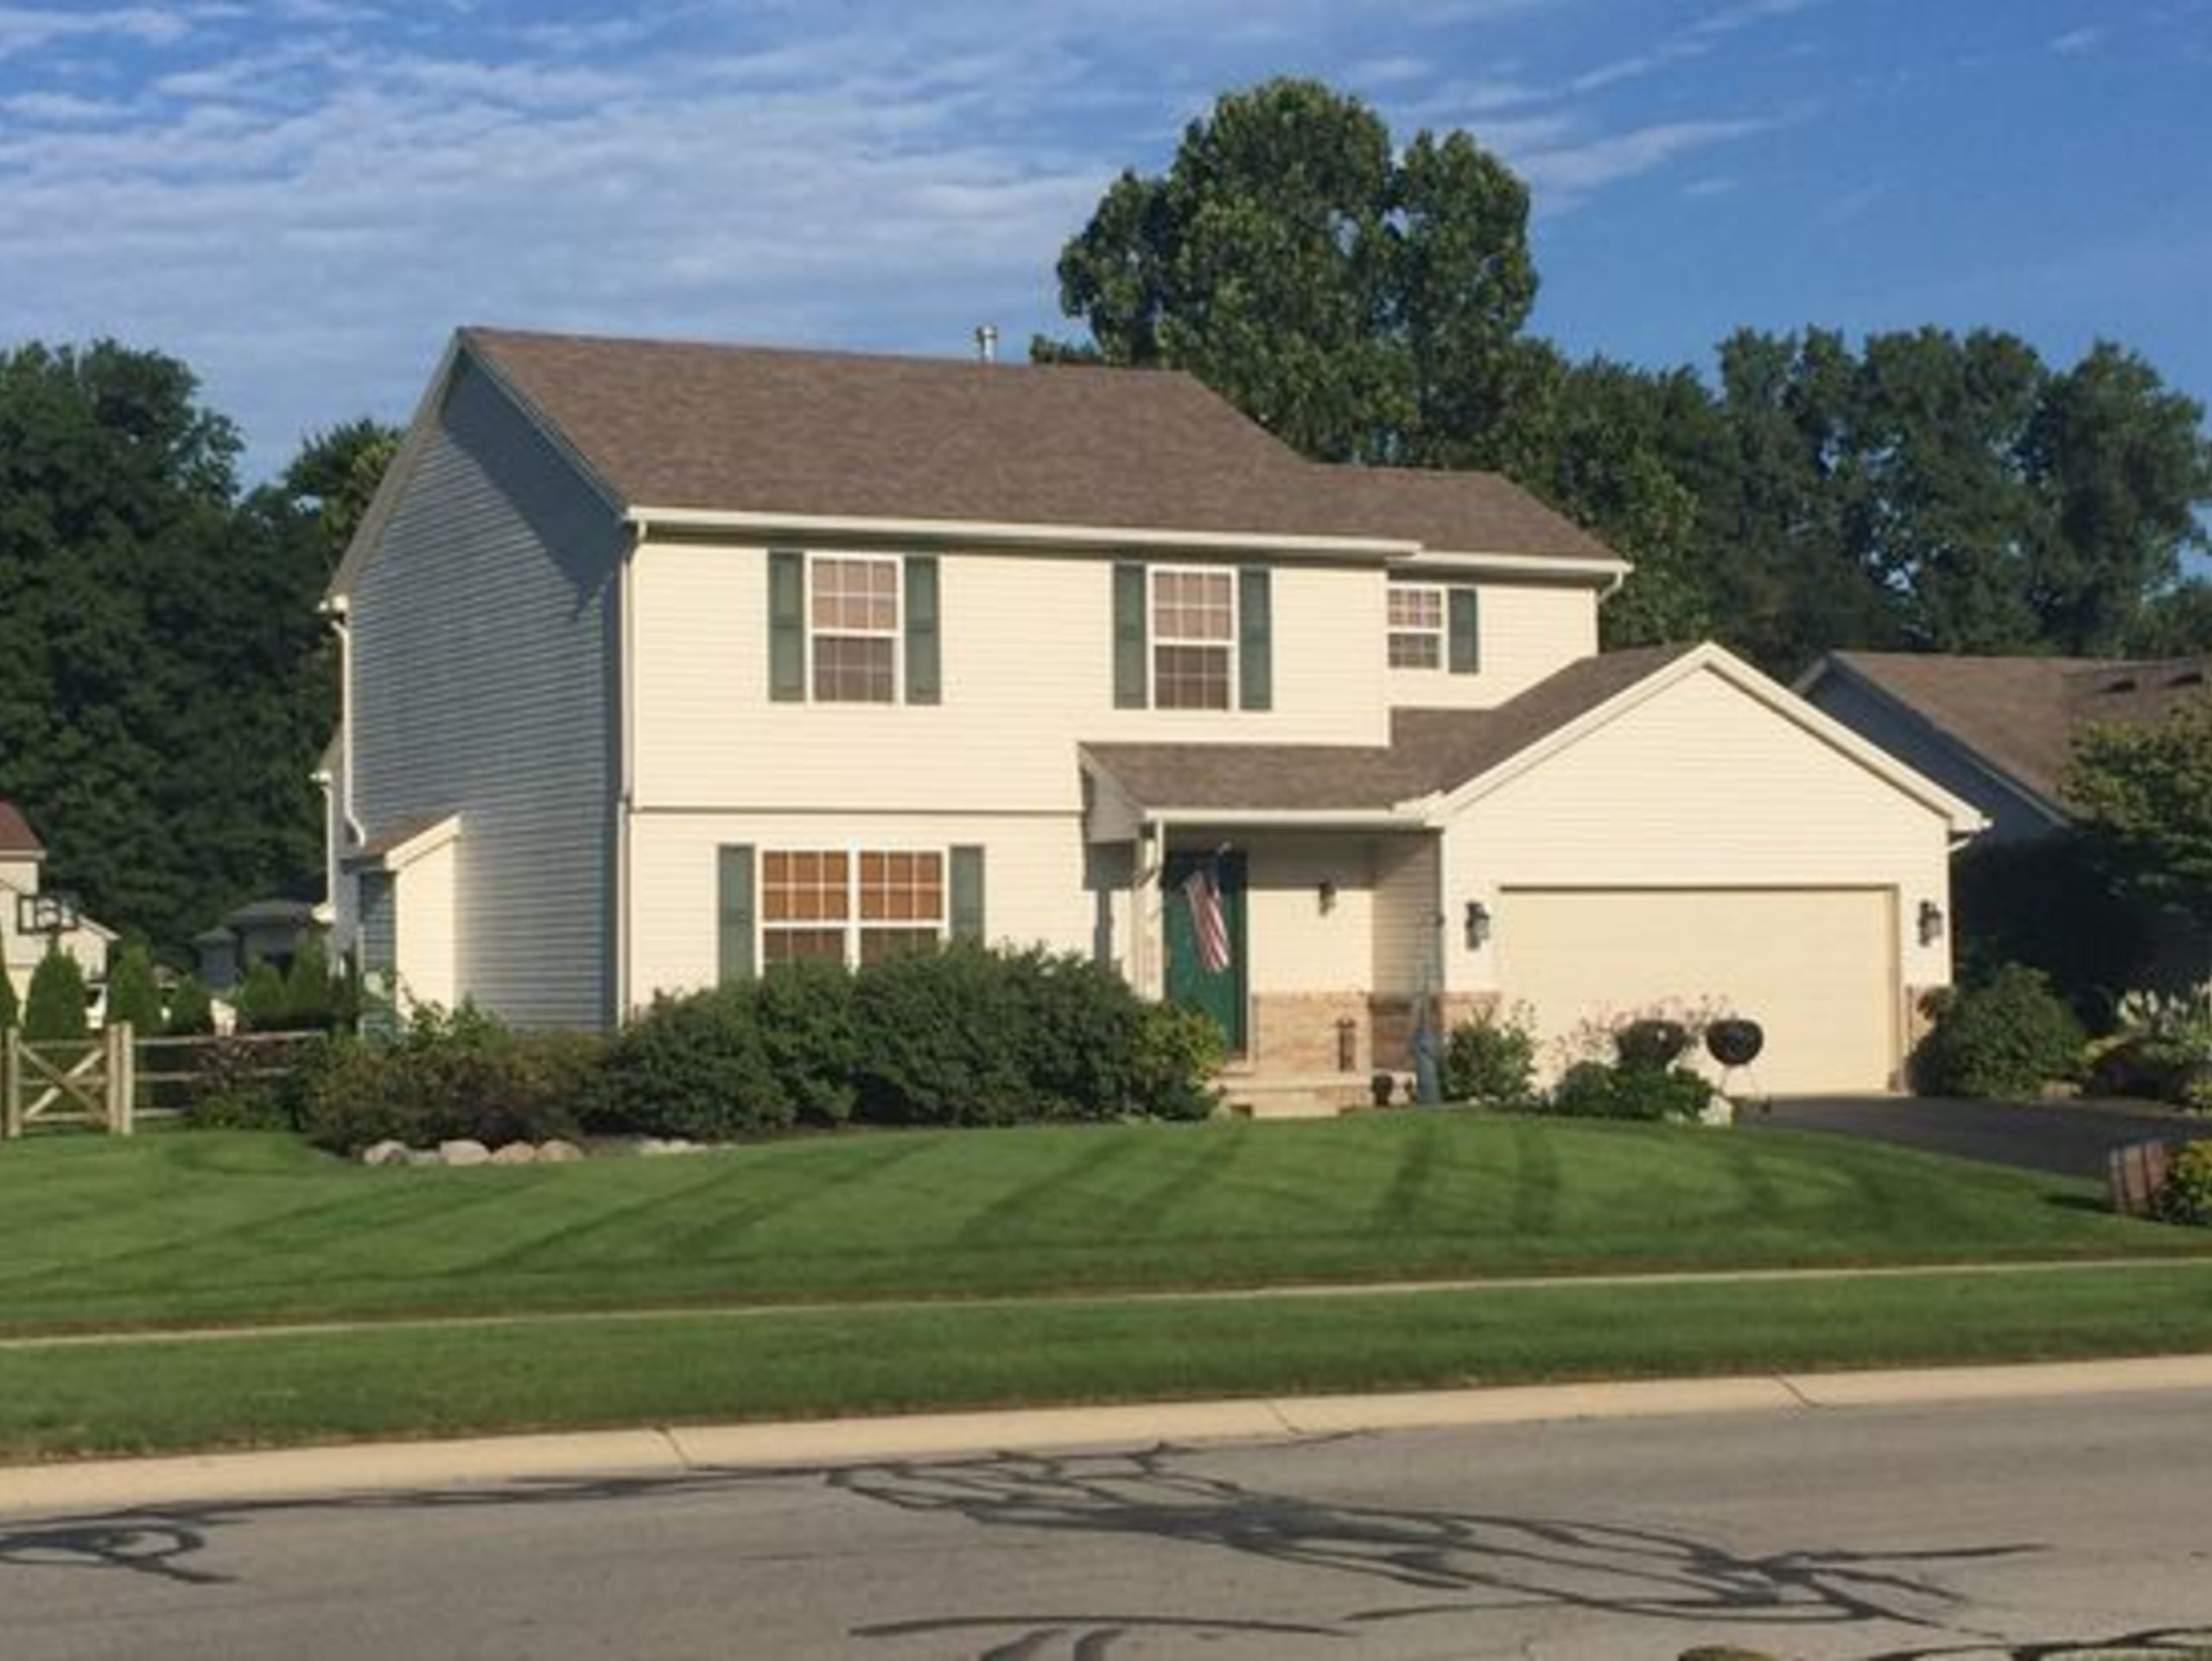 FEATURED HOME 636 NIAGARA AVE.  HOLLAND, OHIO 43528 LISTED FOR $207,500